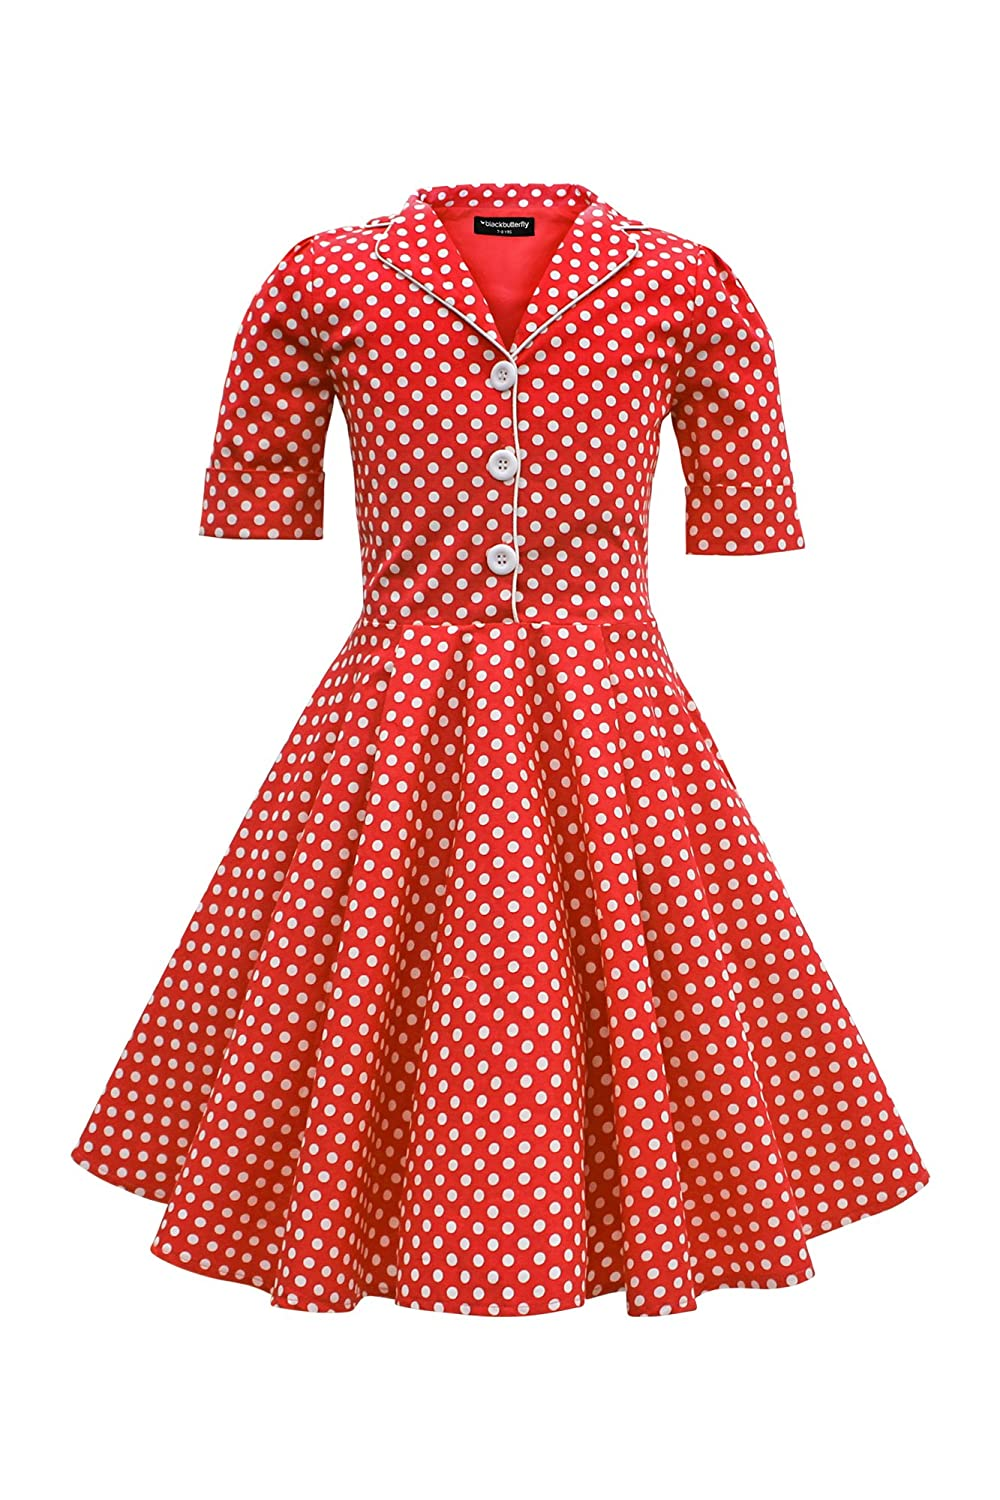 Vintage Style Children's Clothing: Girls, Boys, Baby, Toddler Black Butterfly Clothing BlackButterfly Kids Sabrina Vintage Polka Dot 50s Girls Dress $33.99 AT vintagedancer.com